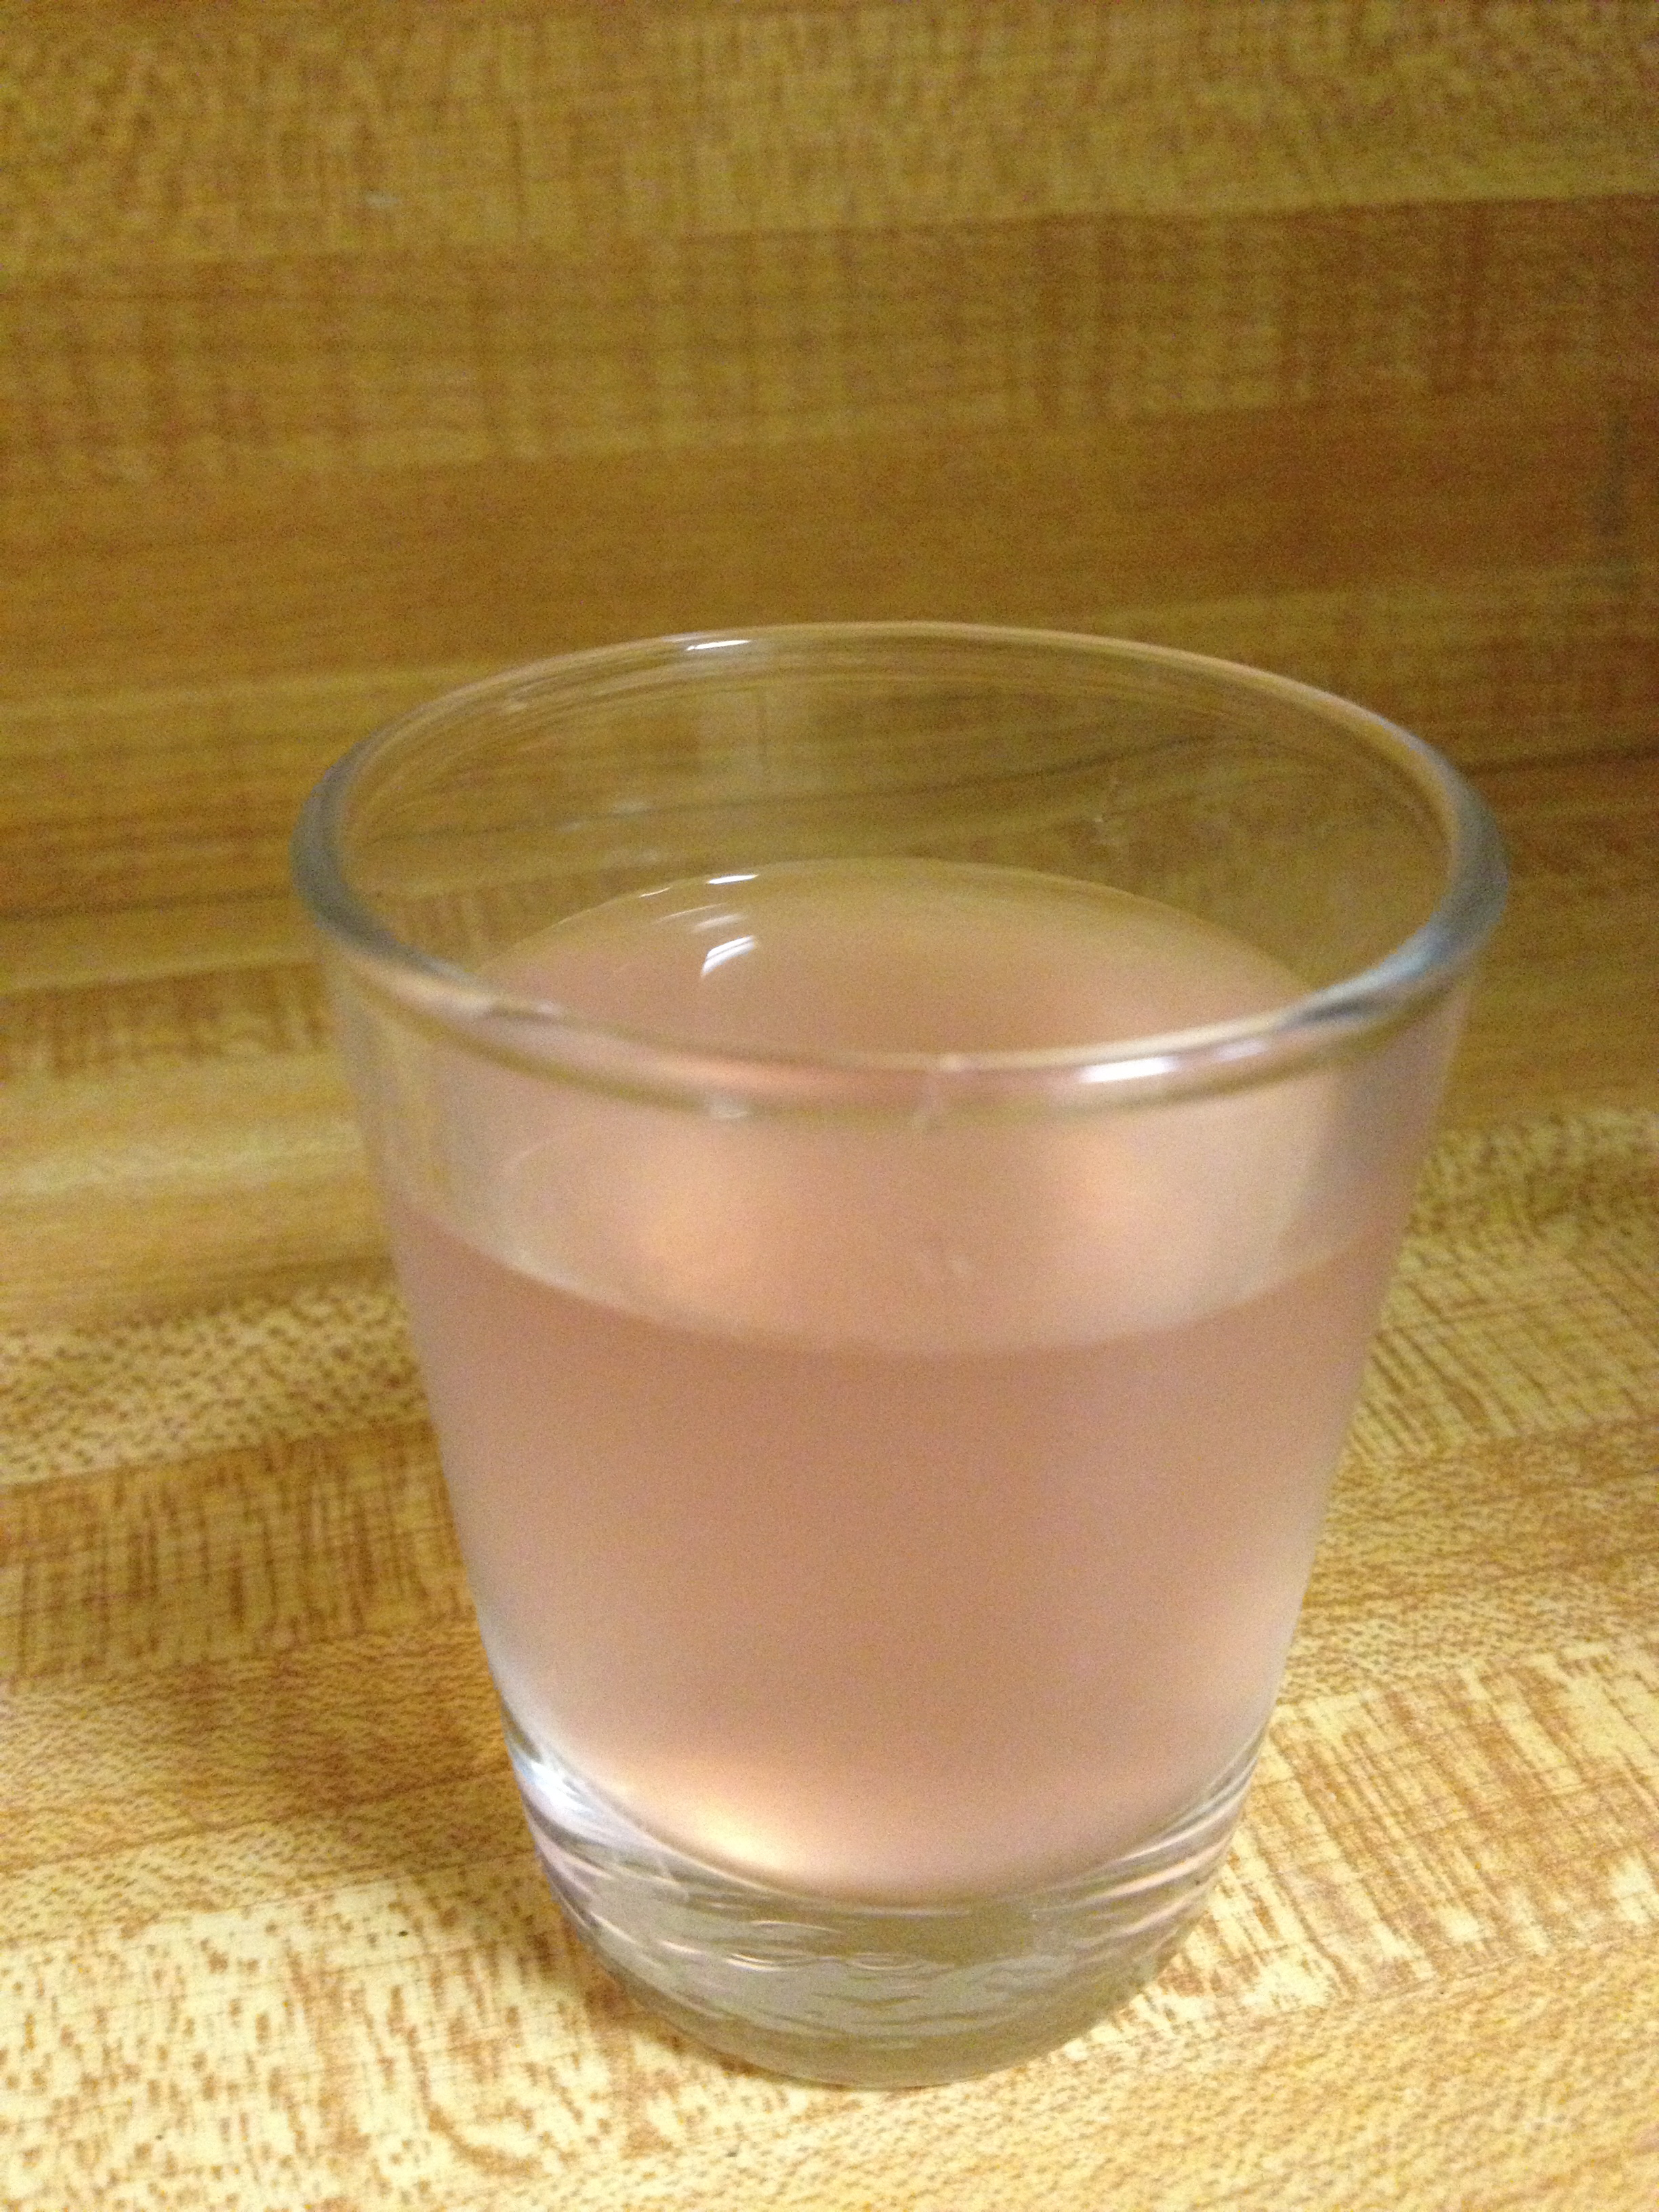 watermelon raspberry aqua fresca is a refreshing way to be hydrated without sugar.